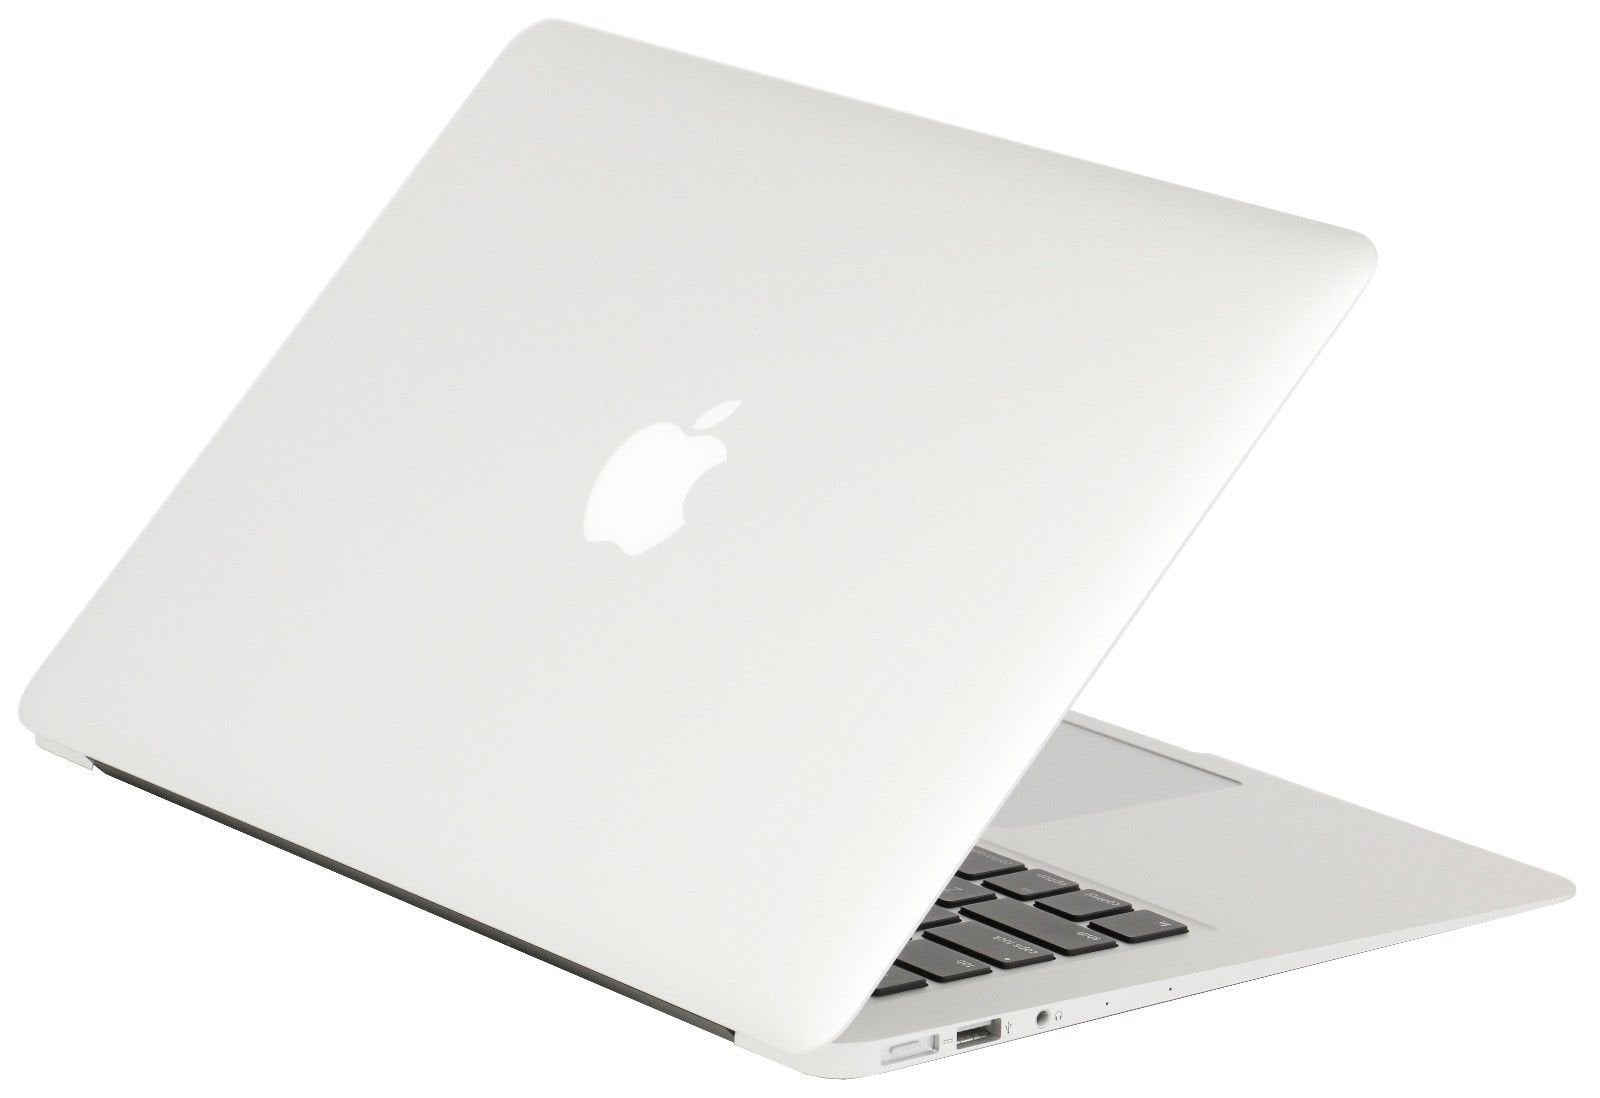 MacBook Air 13 Core i5 1.6GHZ, 8GB RAM 128GB SSD